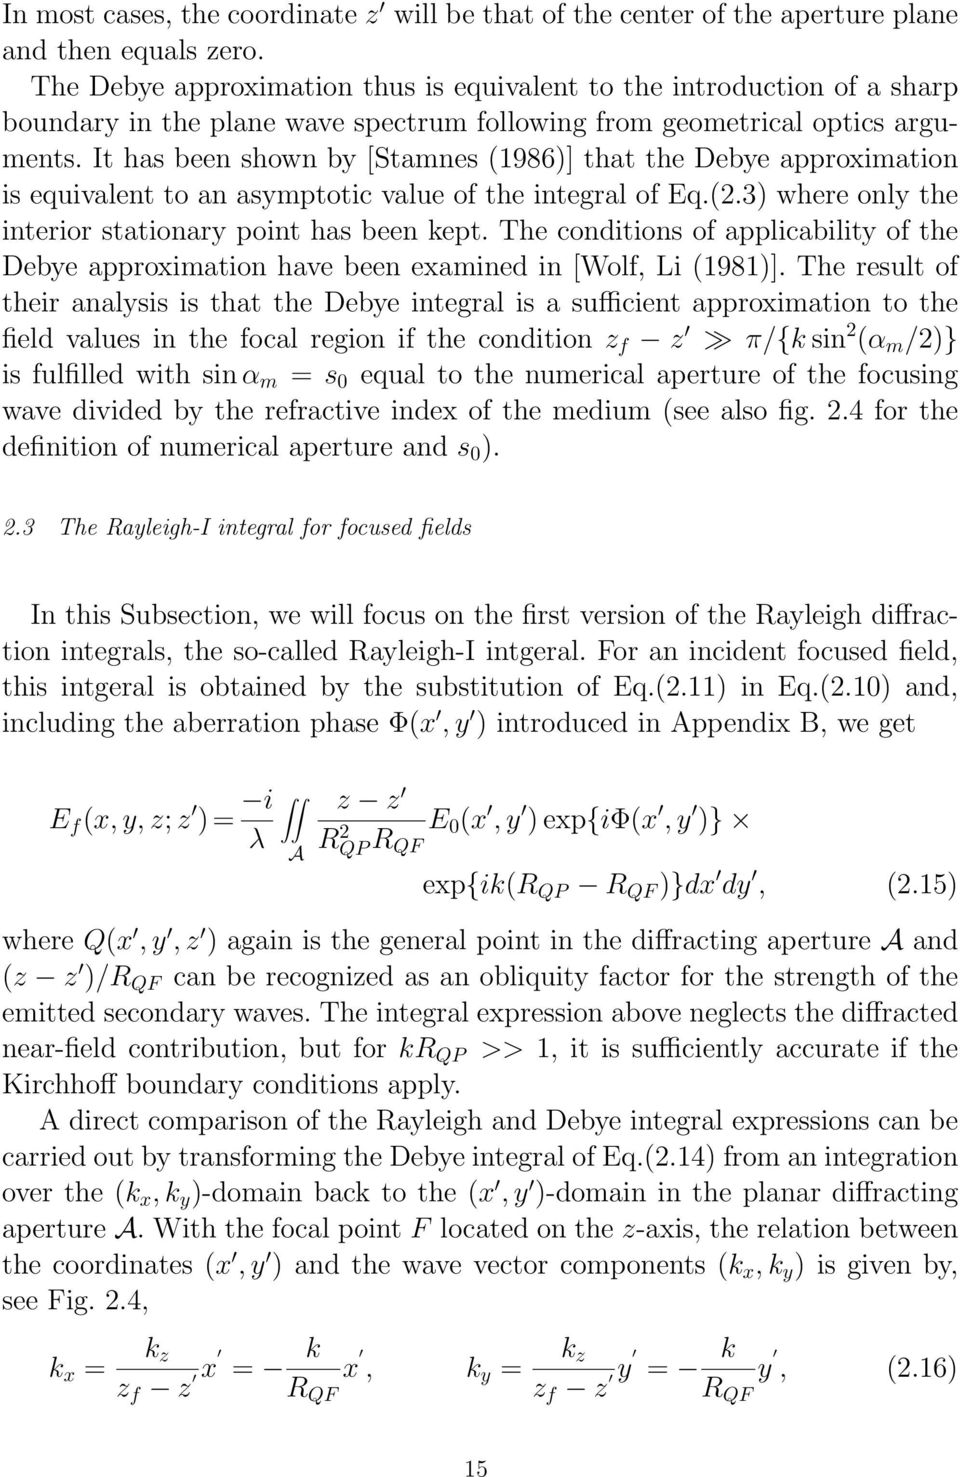 It has been shown by [Stamnes (1986)] that the Debye approximation is equivalent to an asymptotic value of the integral of Eq.(2.3) where only the interior stationary point has been kept.